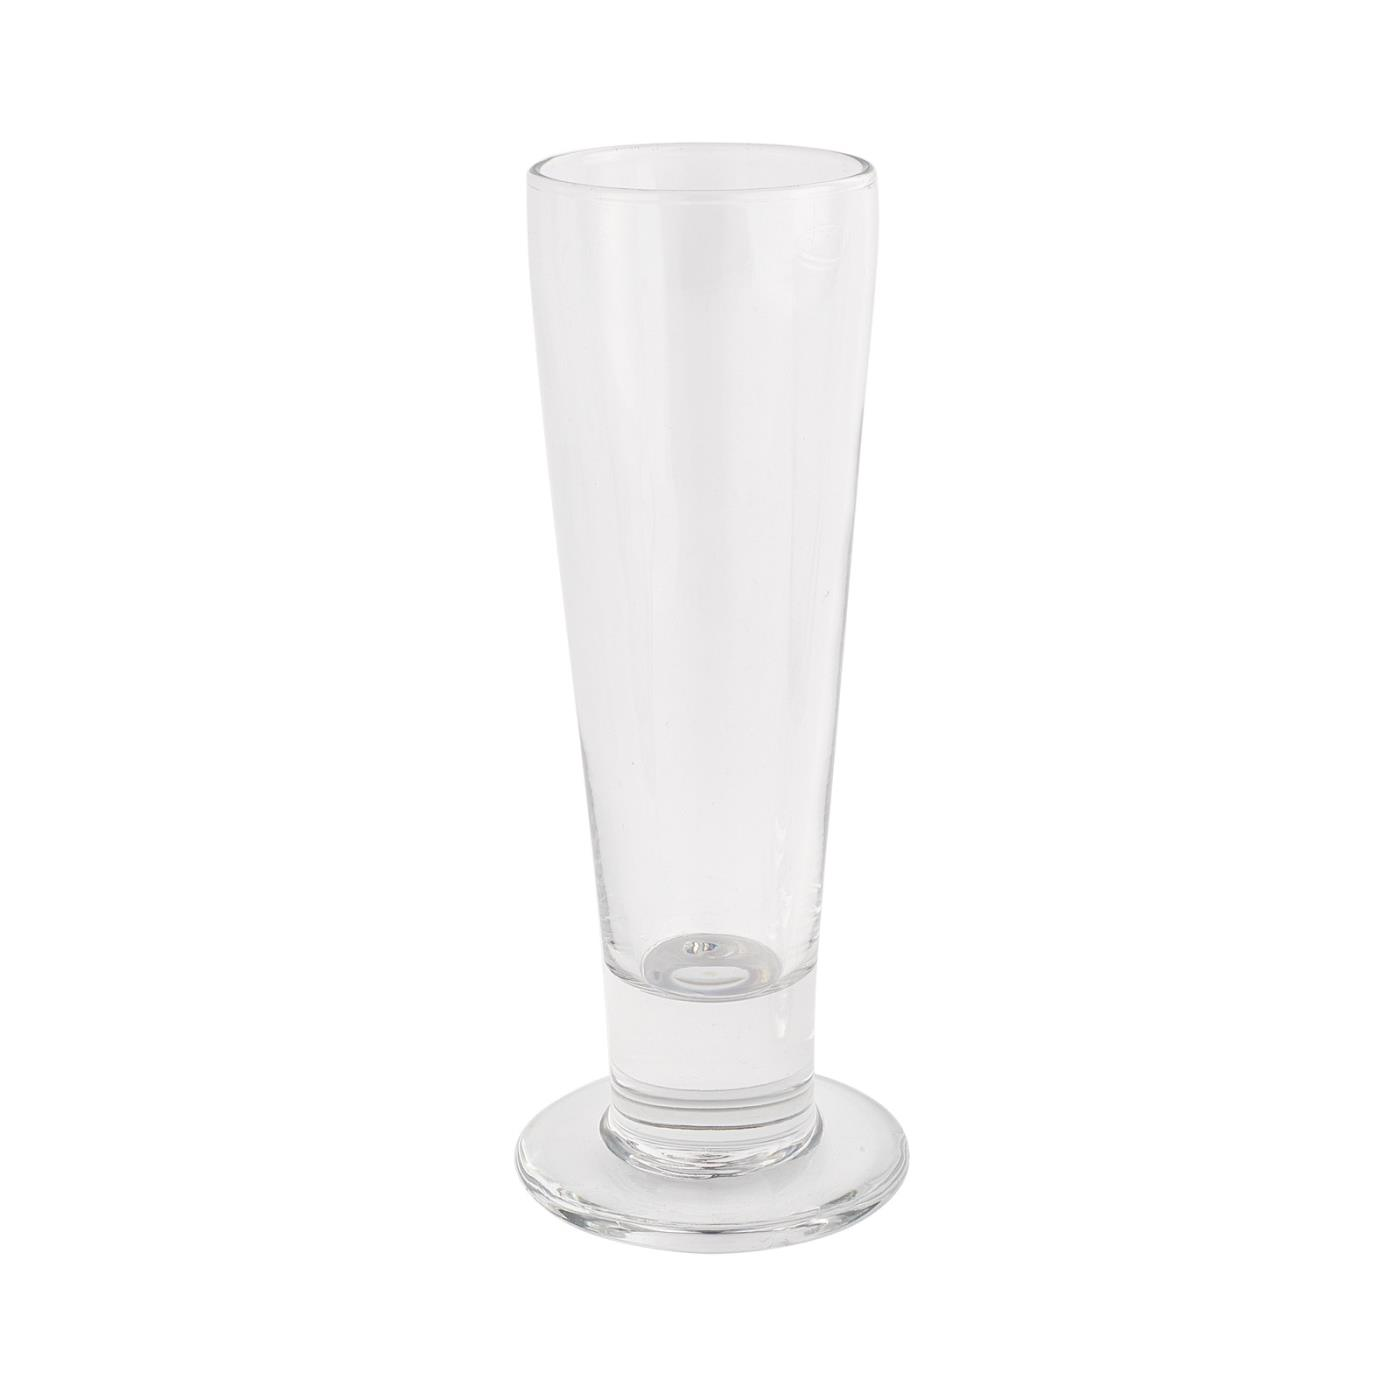 Metro Collection -  Champagne Flute 5.5 oz